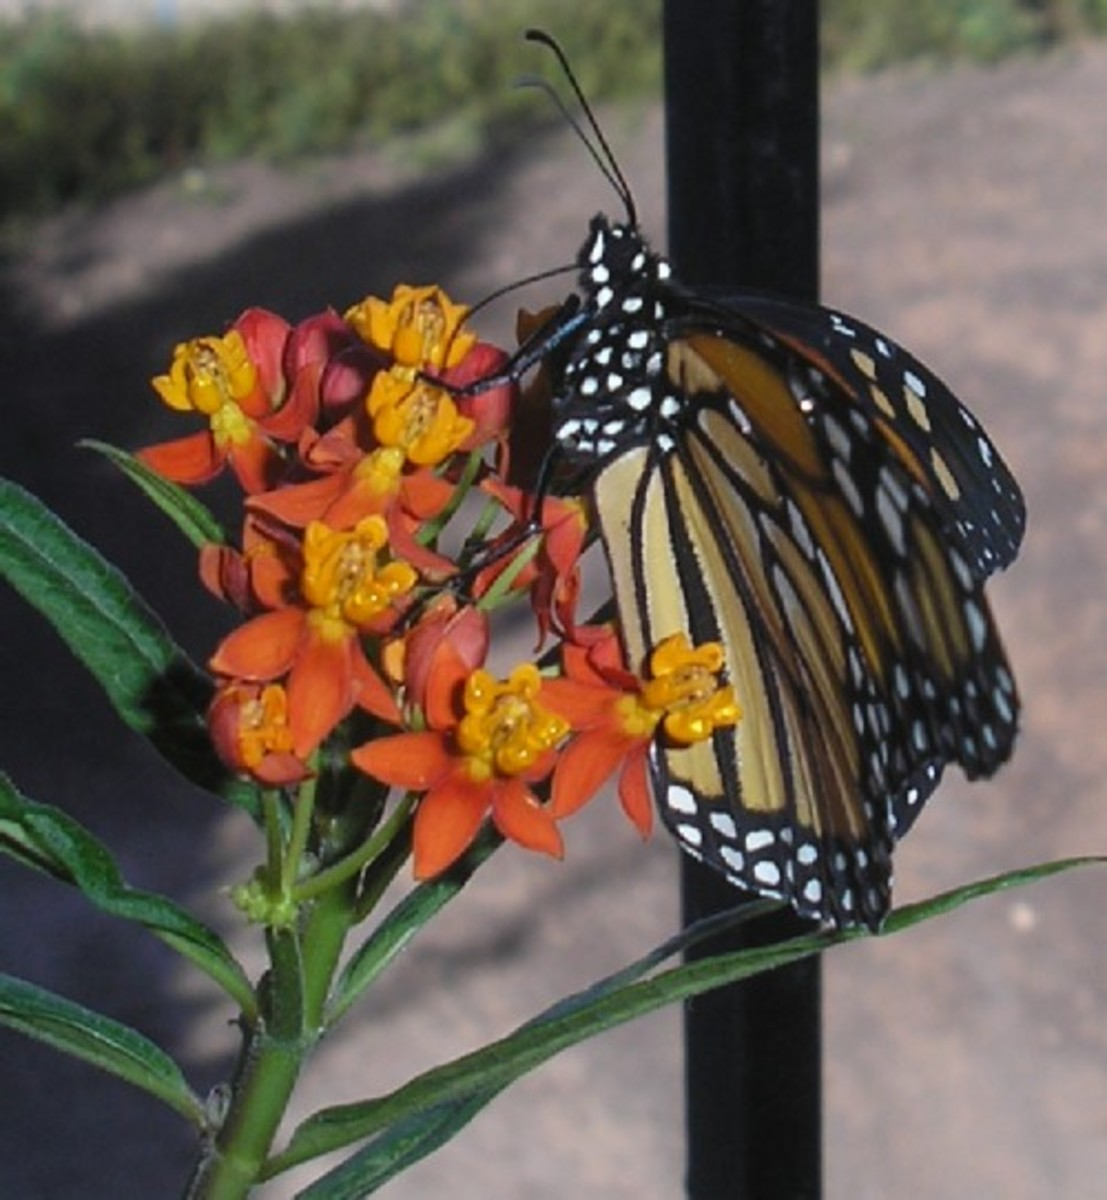 Monarch feeding on milkweed flower